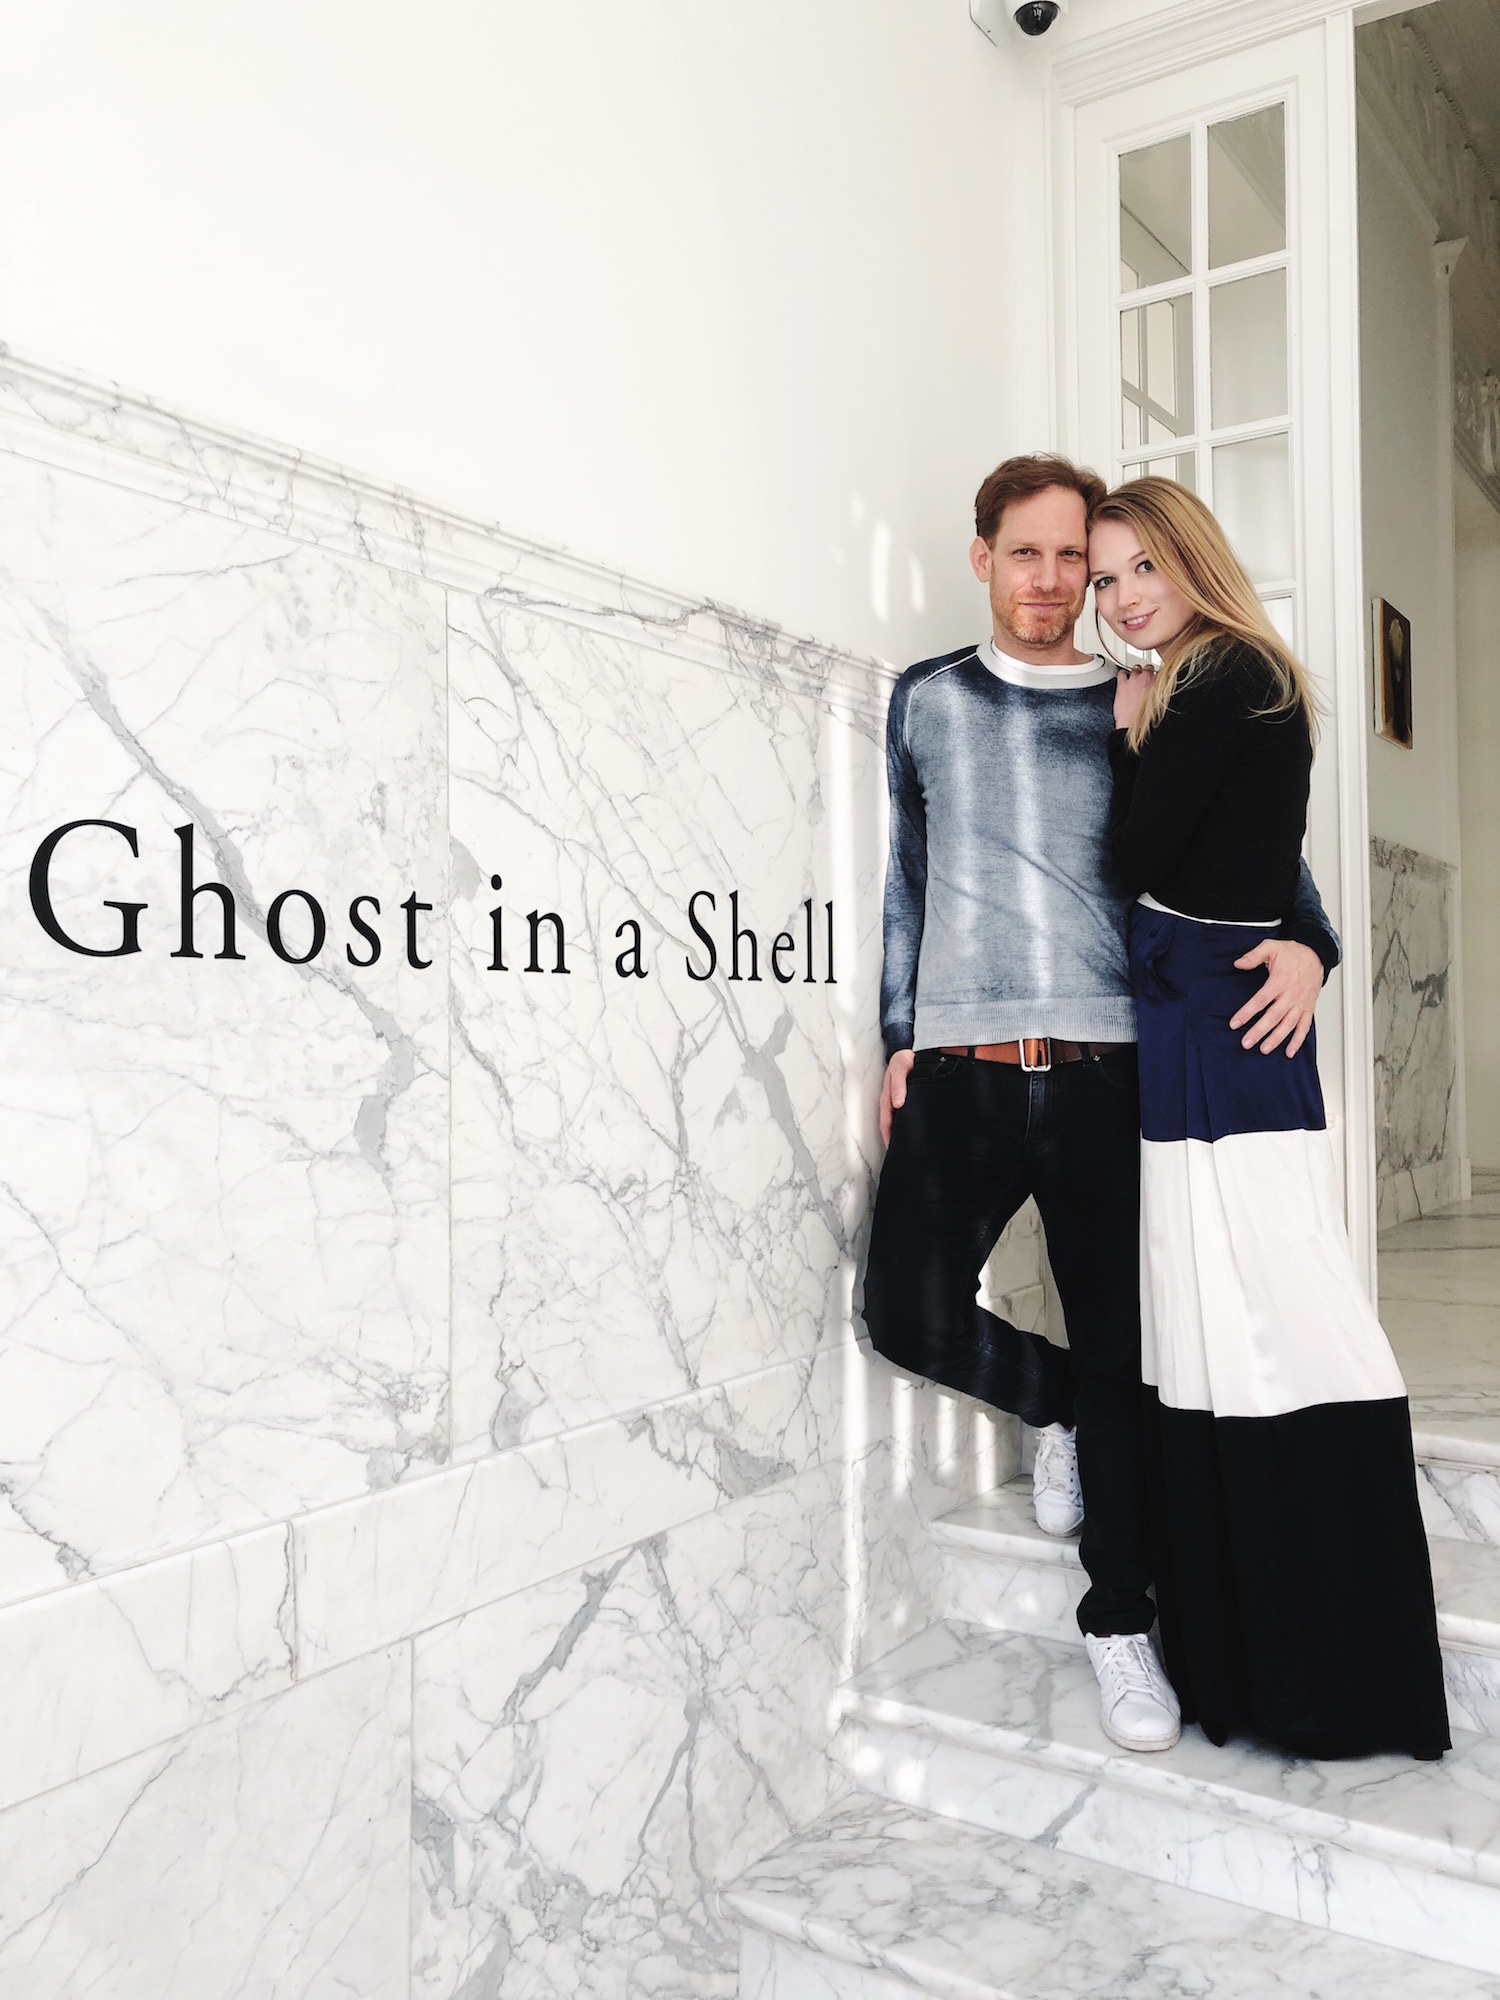 Ronald Rozenbaum and his wife Elena Soboleva at the opening of the Ghost in a Shell exhibition at The Embassy. Courtesy of Ronald Rozenbaum.